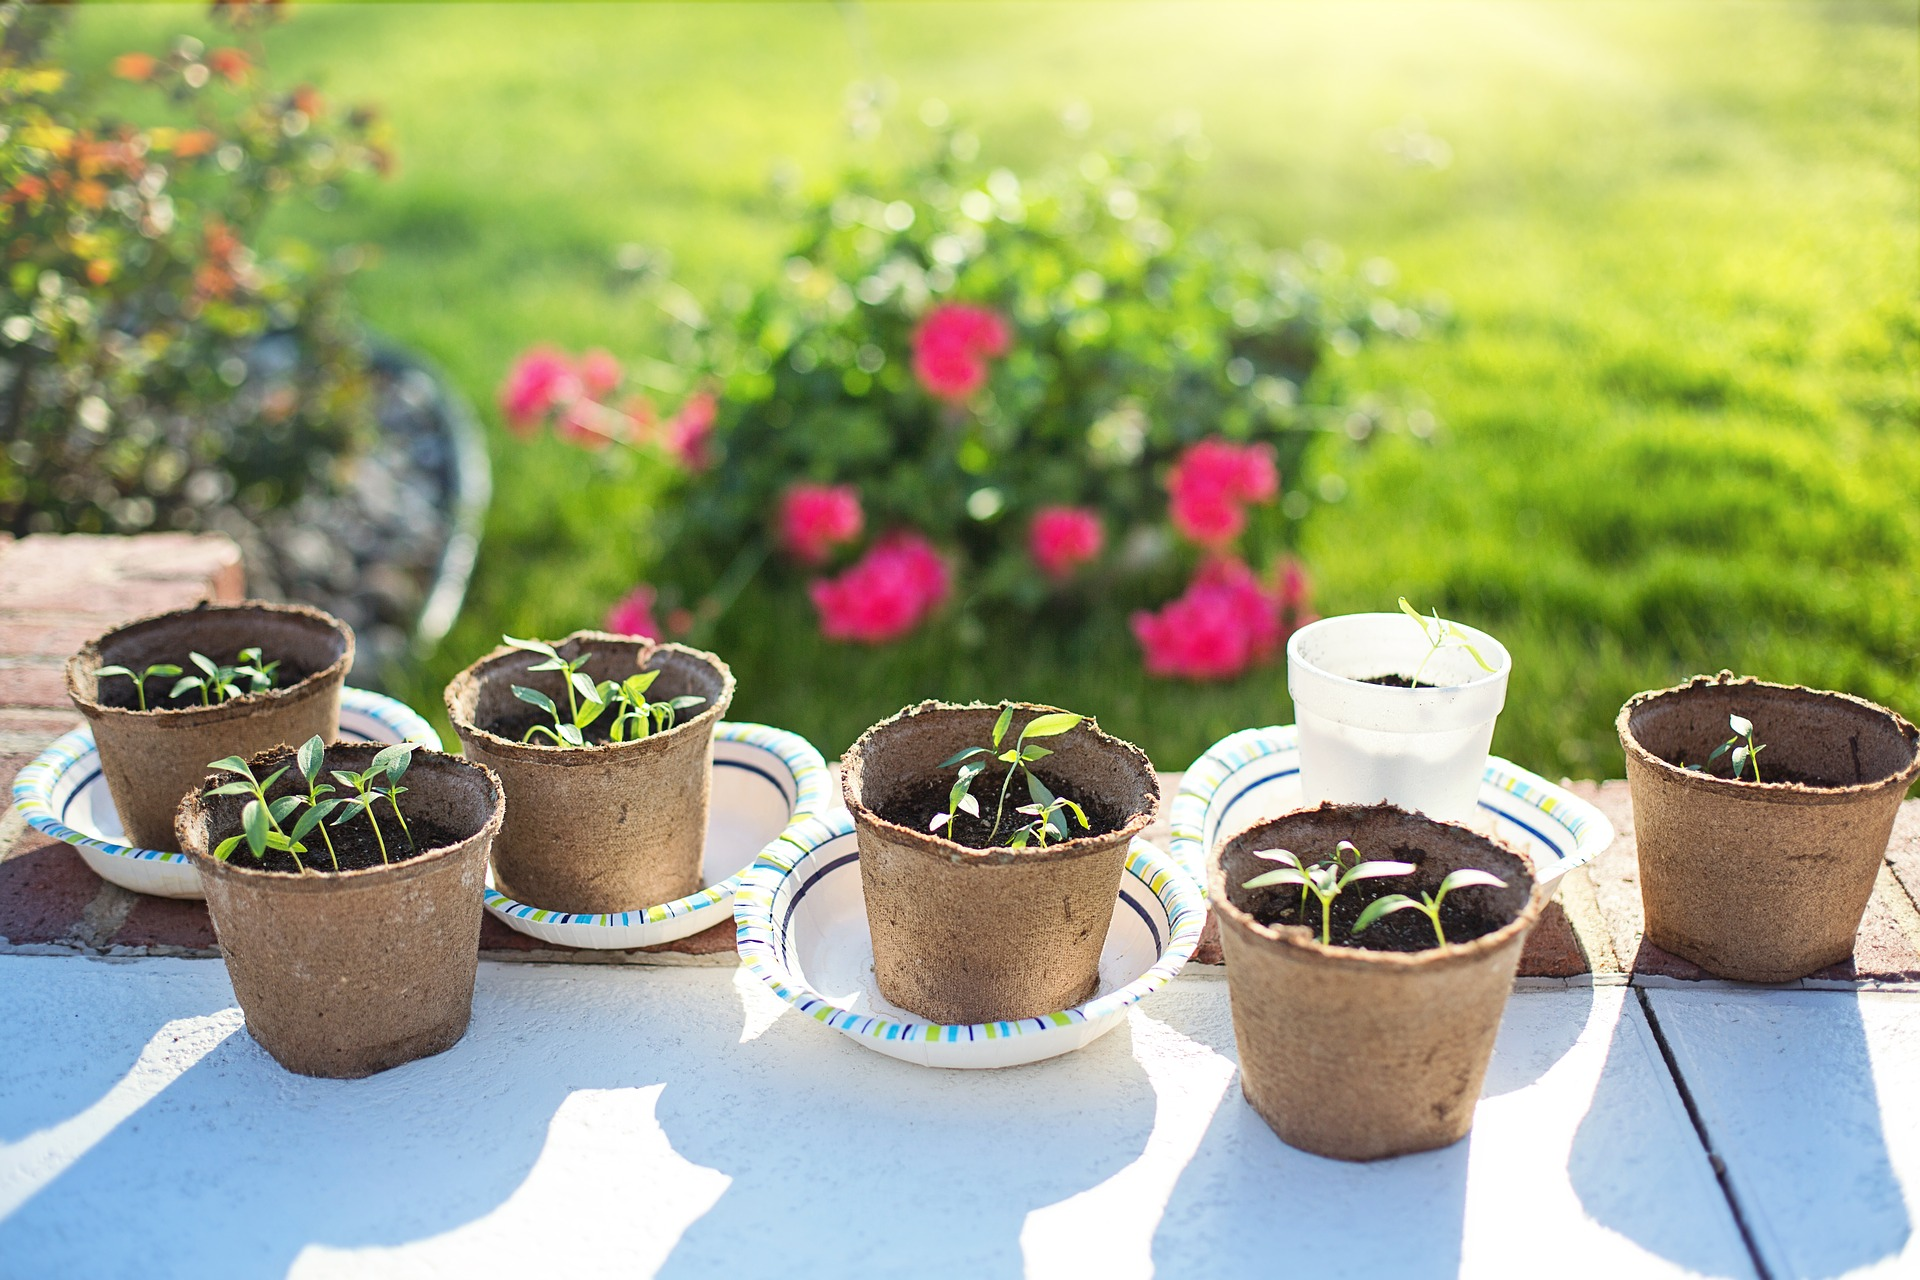 The hardening off process is an important step in growing your own herbs outdoors.